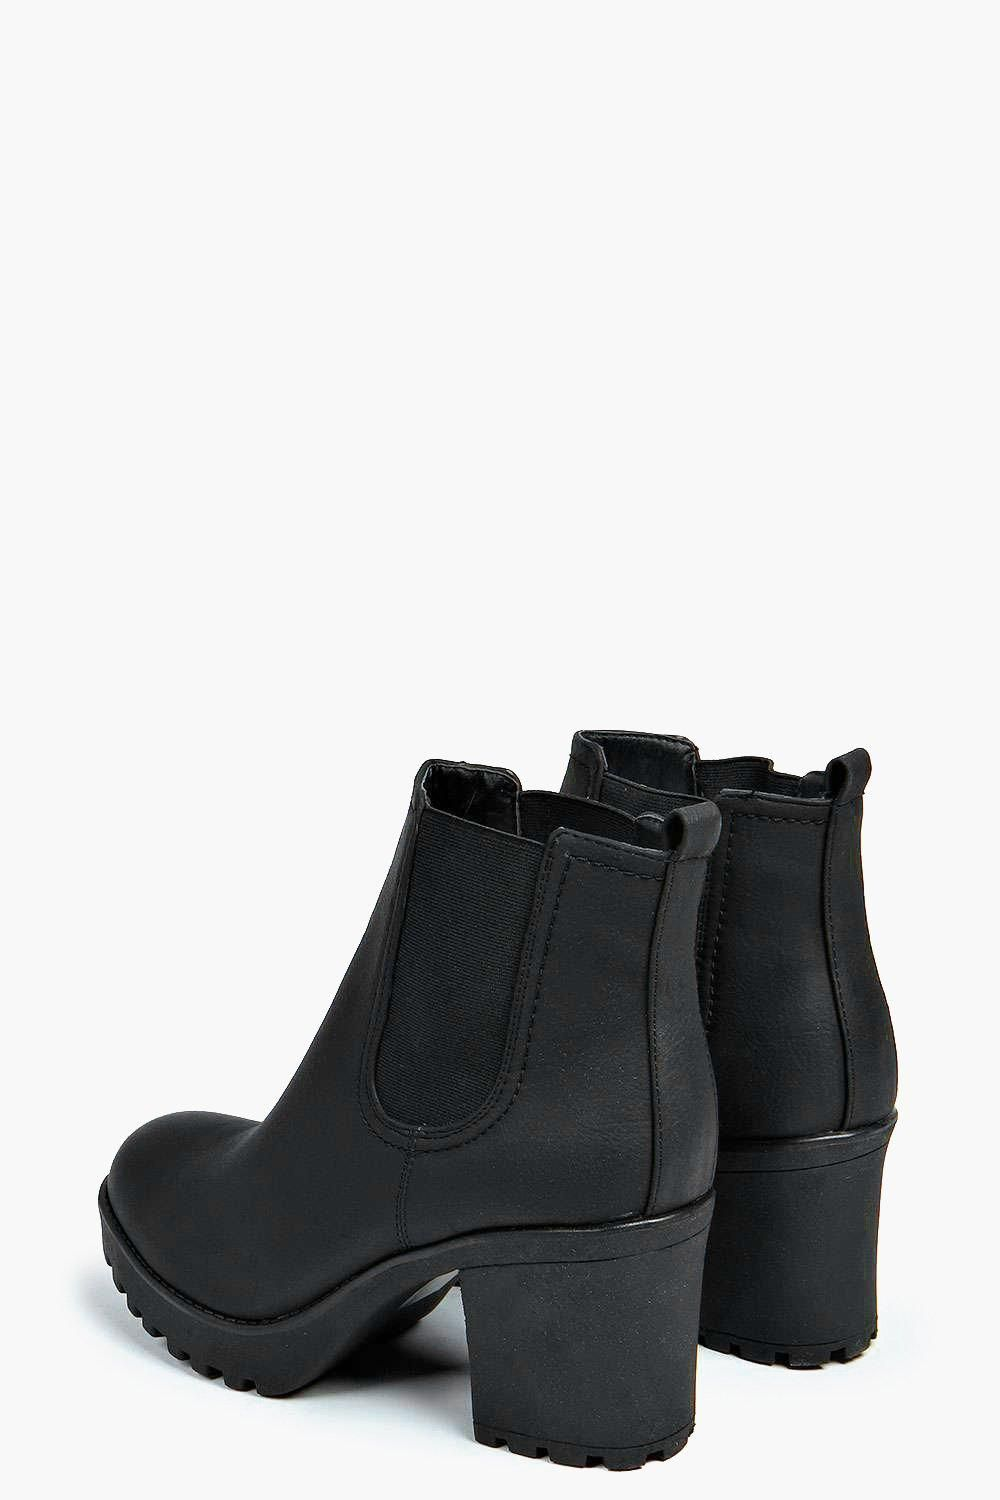 Tia Chunky Cleated Heel Chelsea Boot | Outfits | Pinterest | Night ...